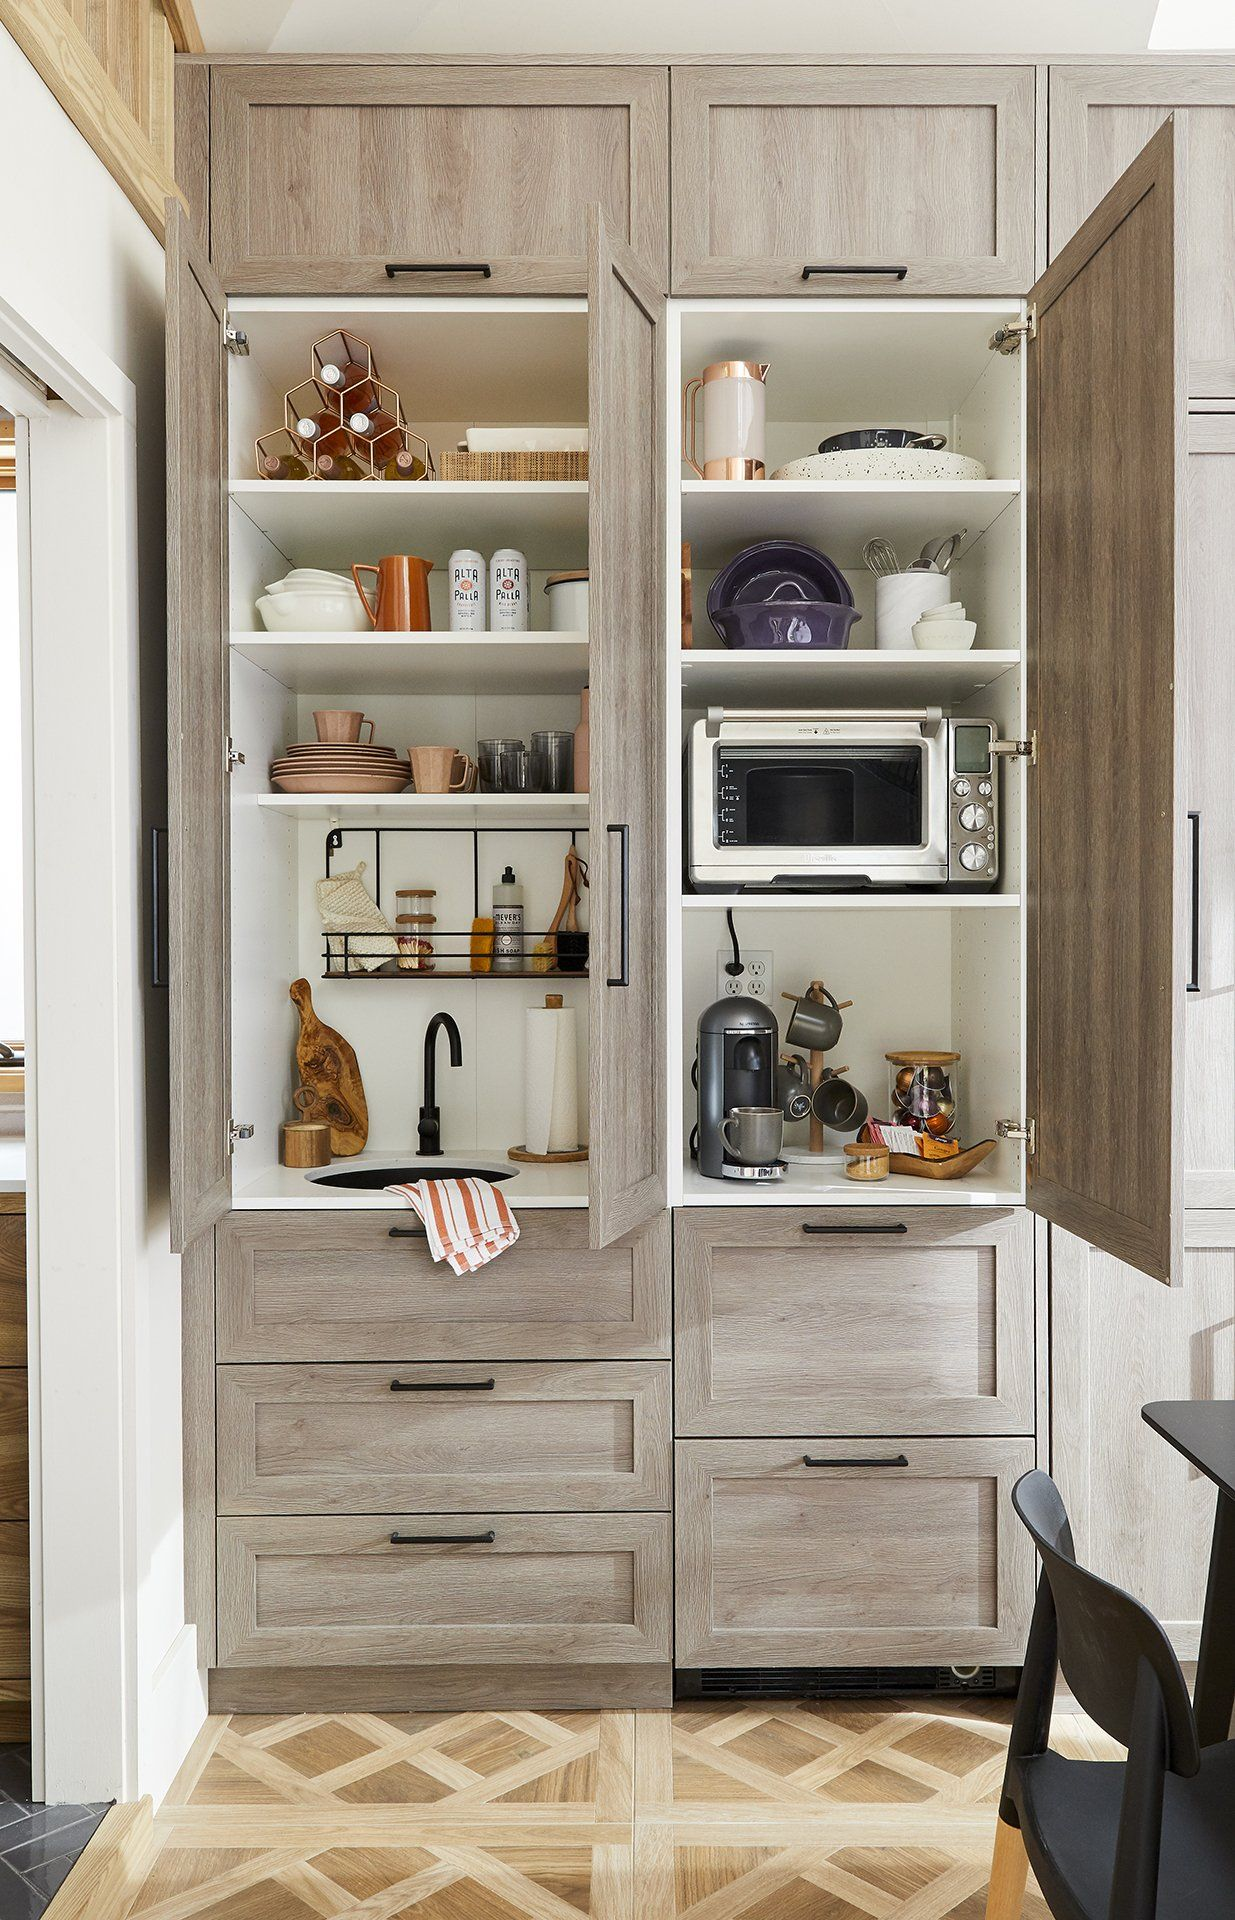 Clever Storage Wall Transforms This Unused Room Into A Heavenly Guest Retreat Clutter Free Kitchen Ikea Sektion Cabinets Appliance Garage